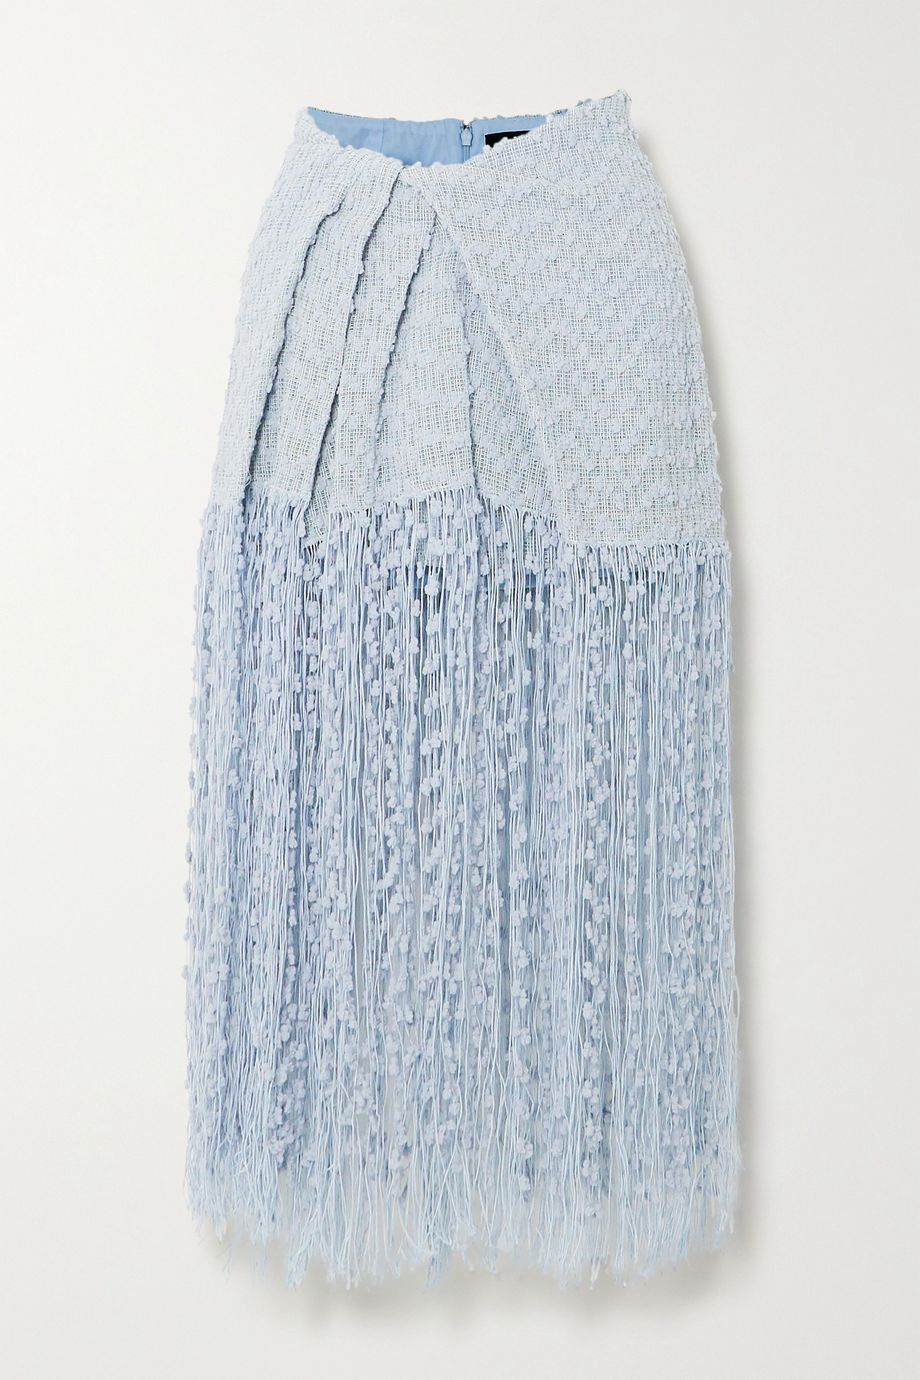 Jacquemus Capri fringed appliquéd tweed midi skirt